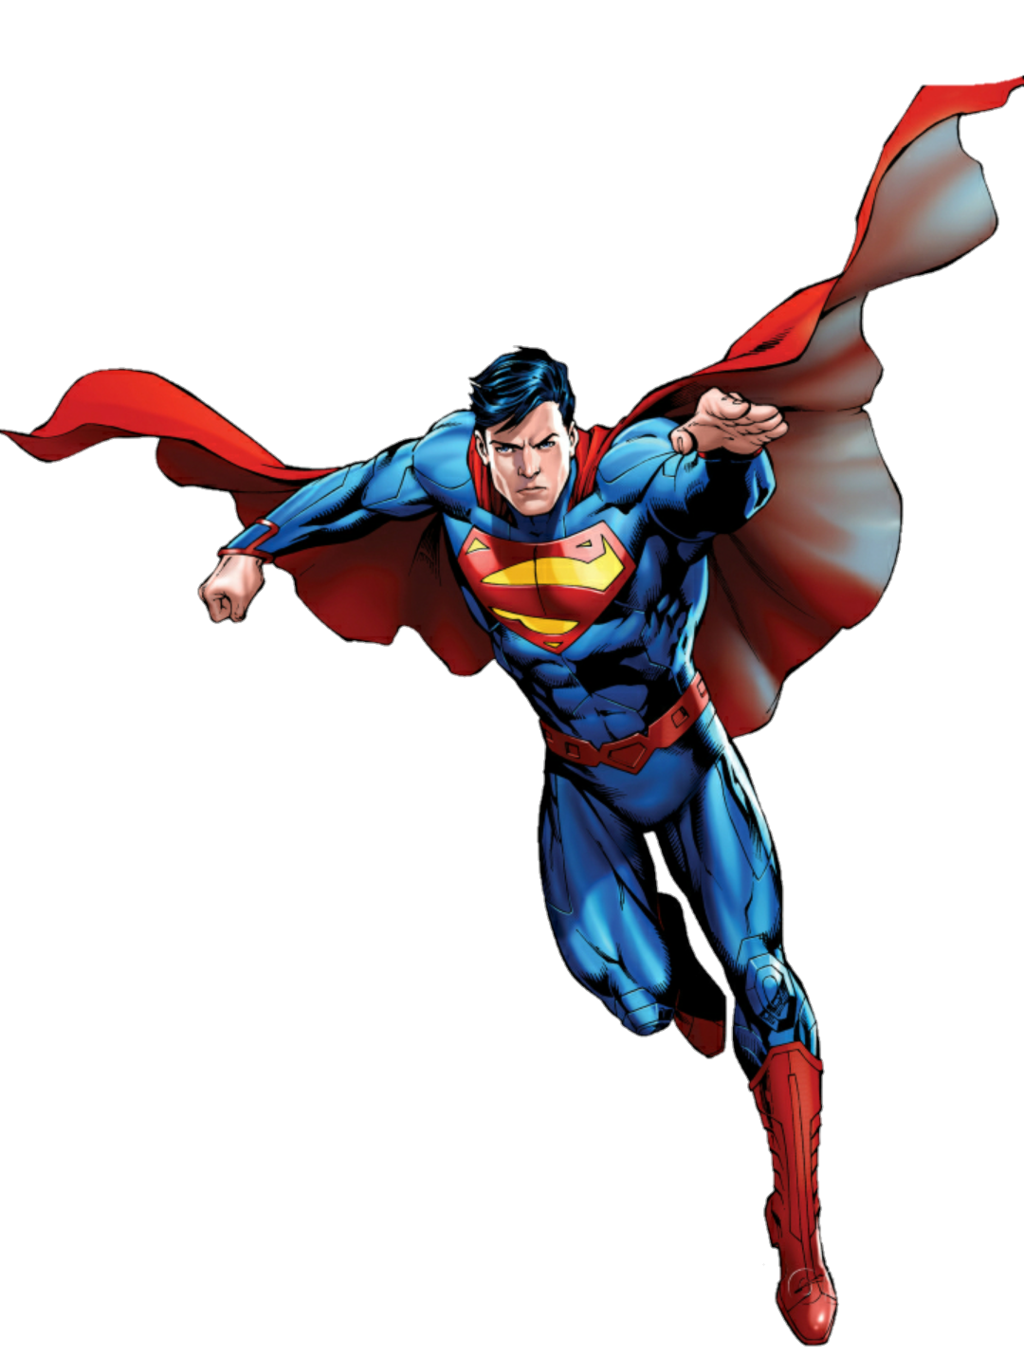 New 52 Supes Art (I Didnu0027t Draw This Btw) By MayanTimeGod - Superman PNG